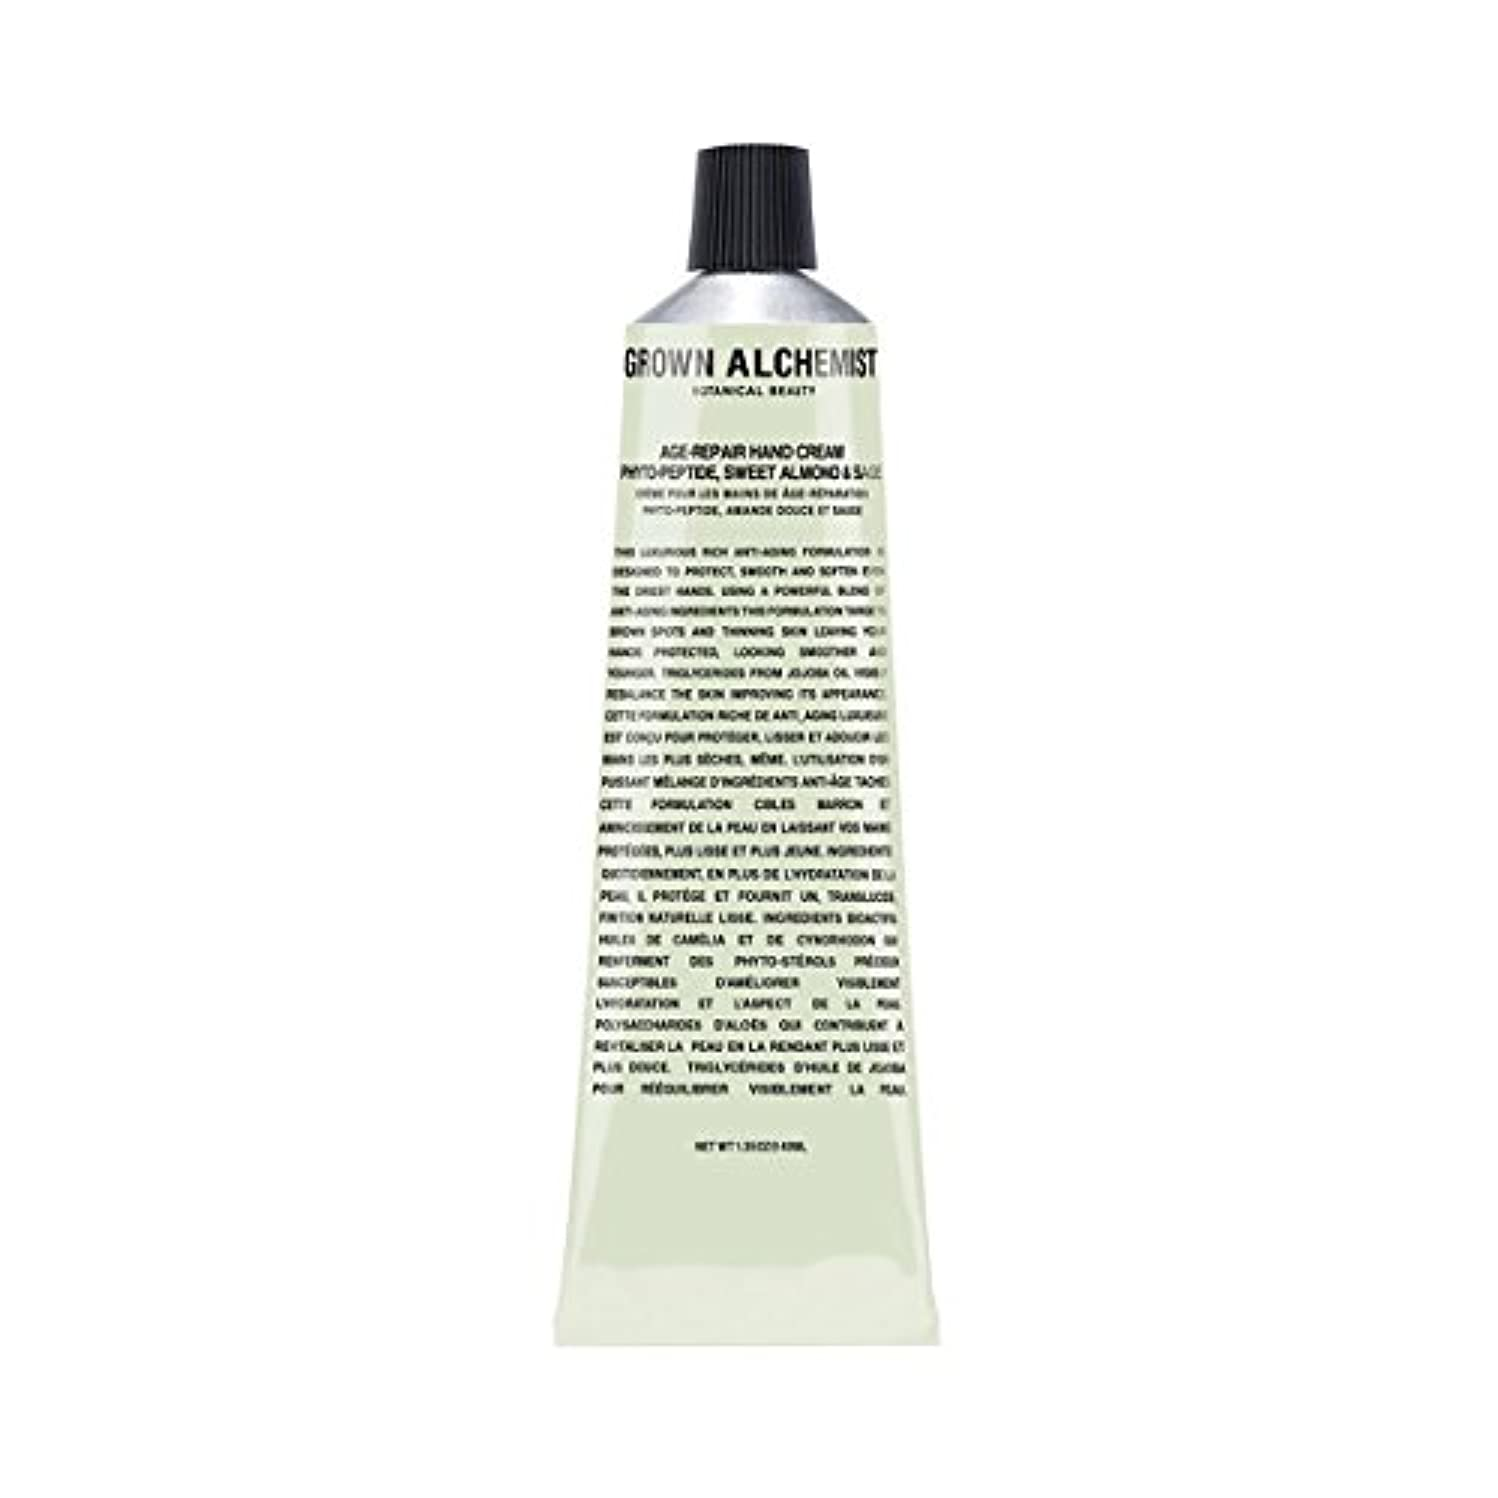 受信精査するアクセスGrown Alchemist Age-Repair Hand Cream - Phyto-Peptide, Sweet Almond & Sage 40ml/1.35oz並行輸入品